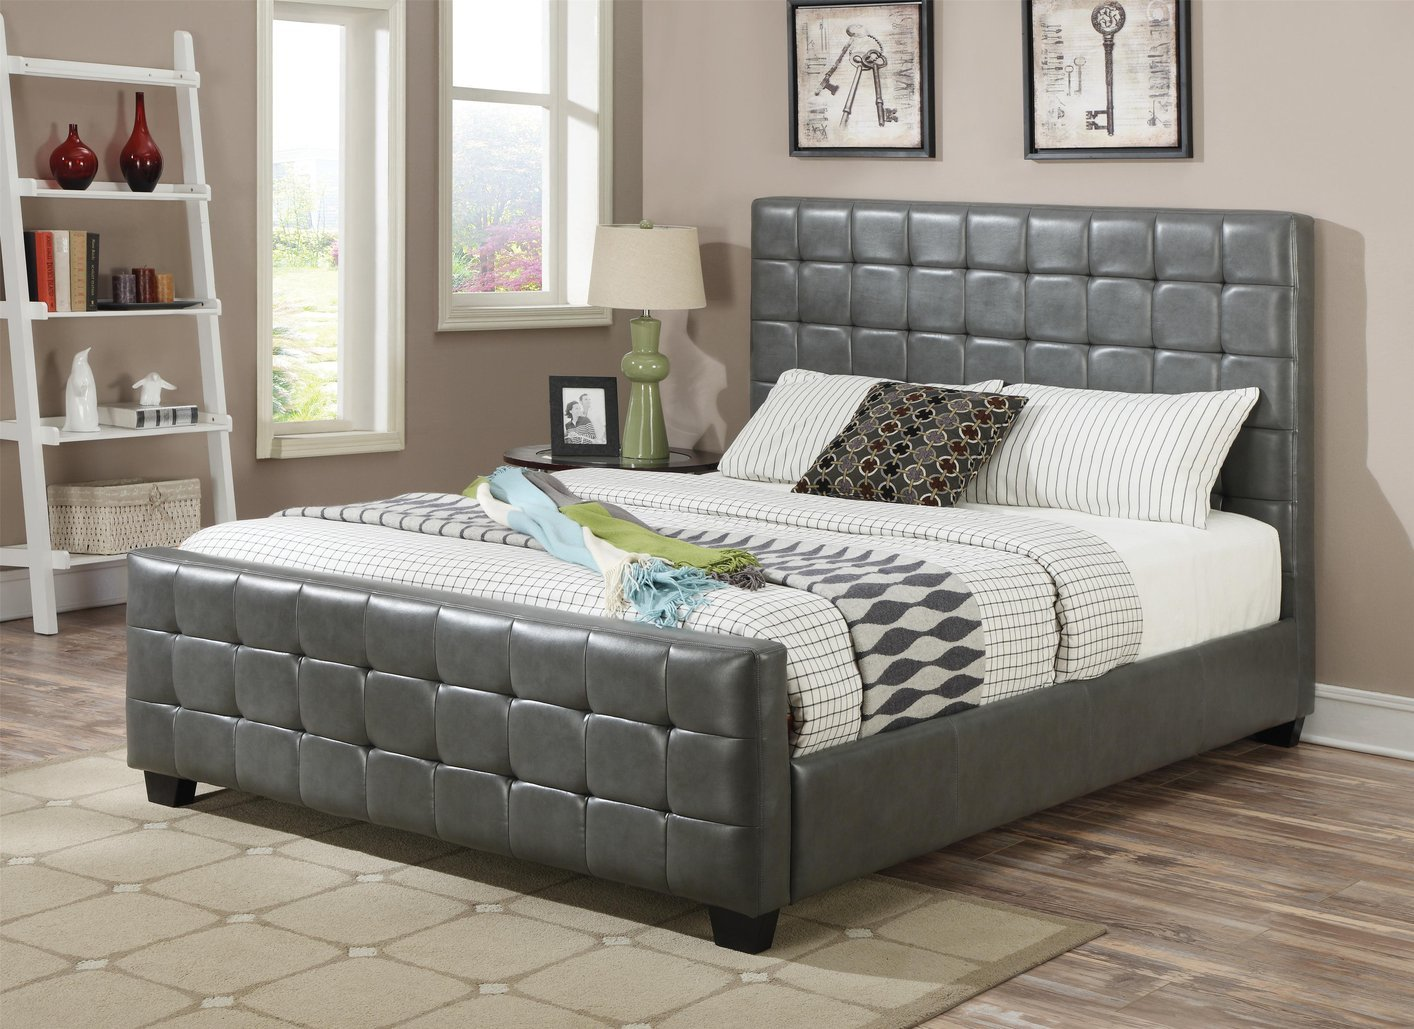 Grey leather california king size bed steal a sofa for Cal king bed size